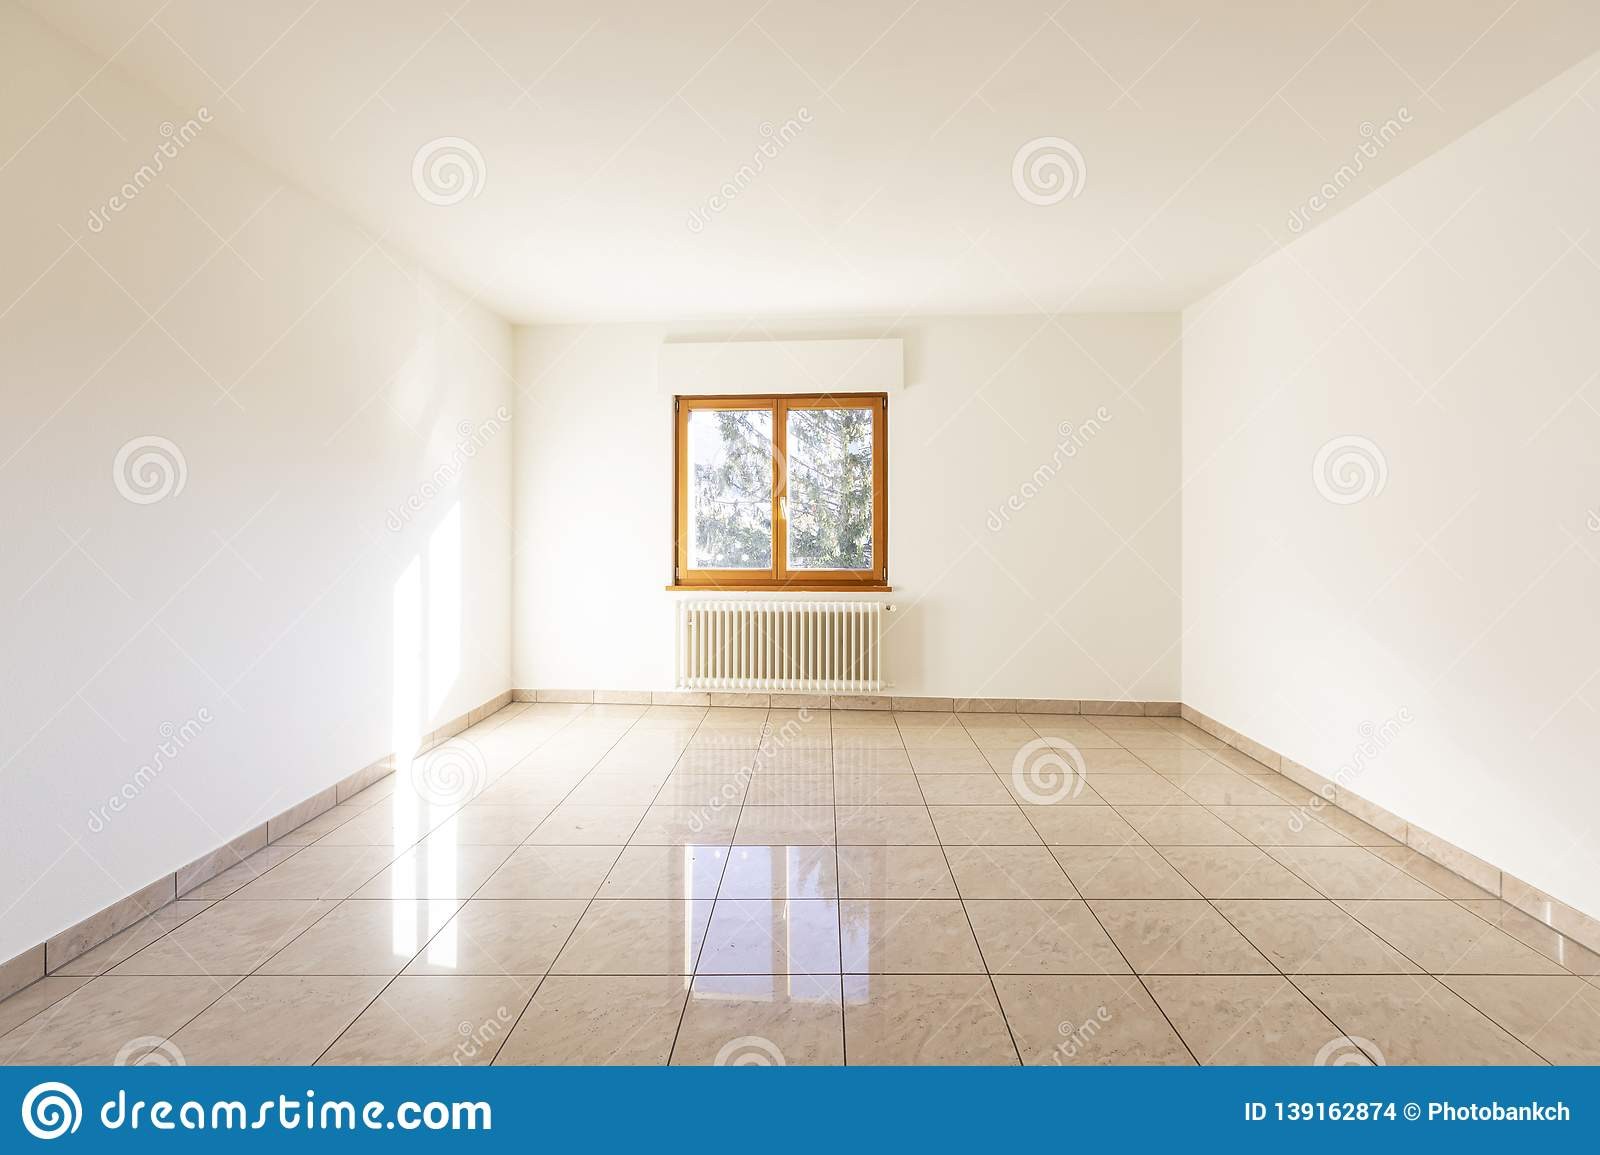 Empty Bedroom Without Bed And Window Stock Photo Image Of Empty